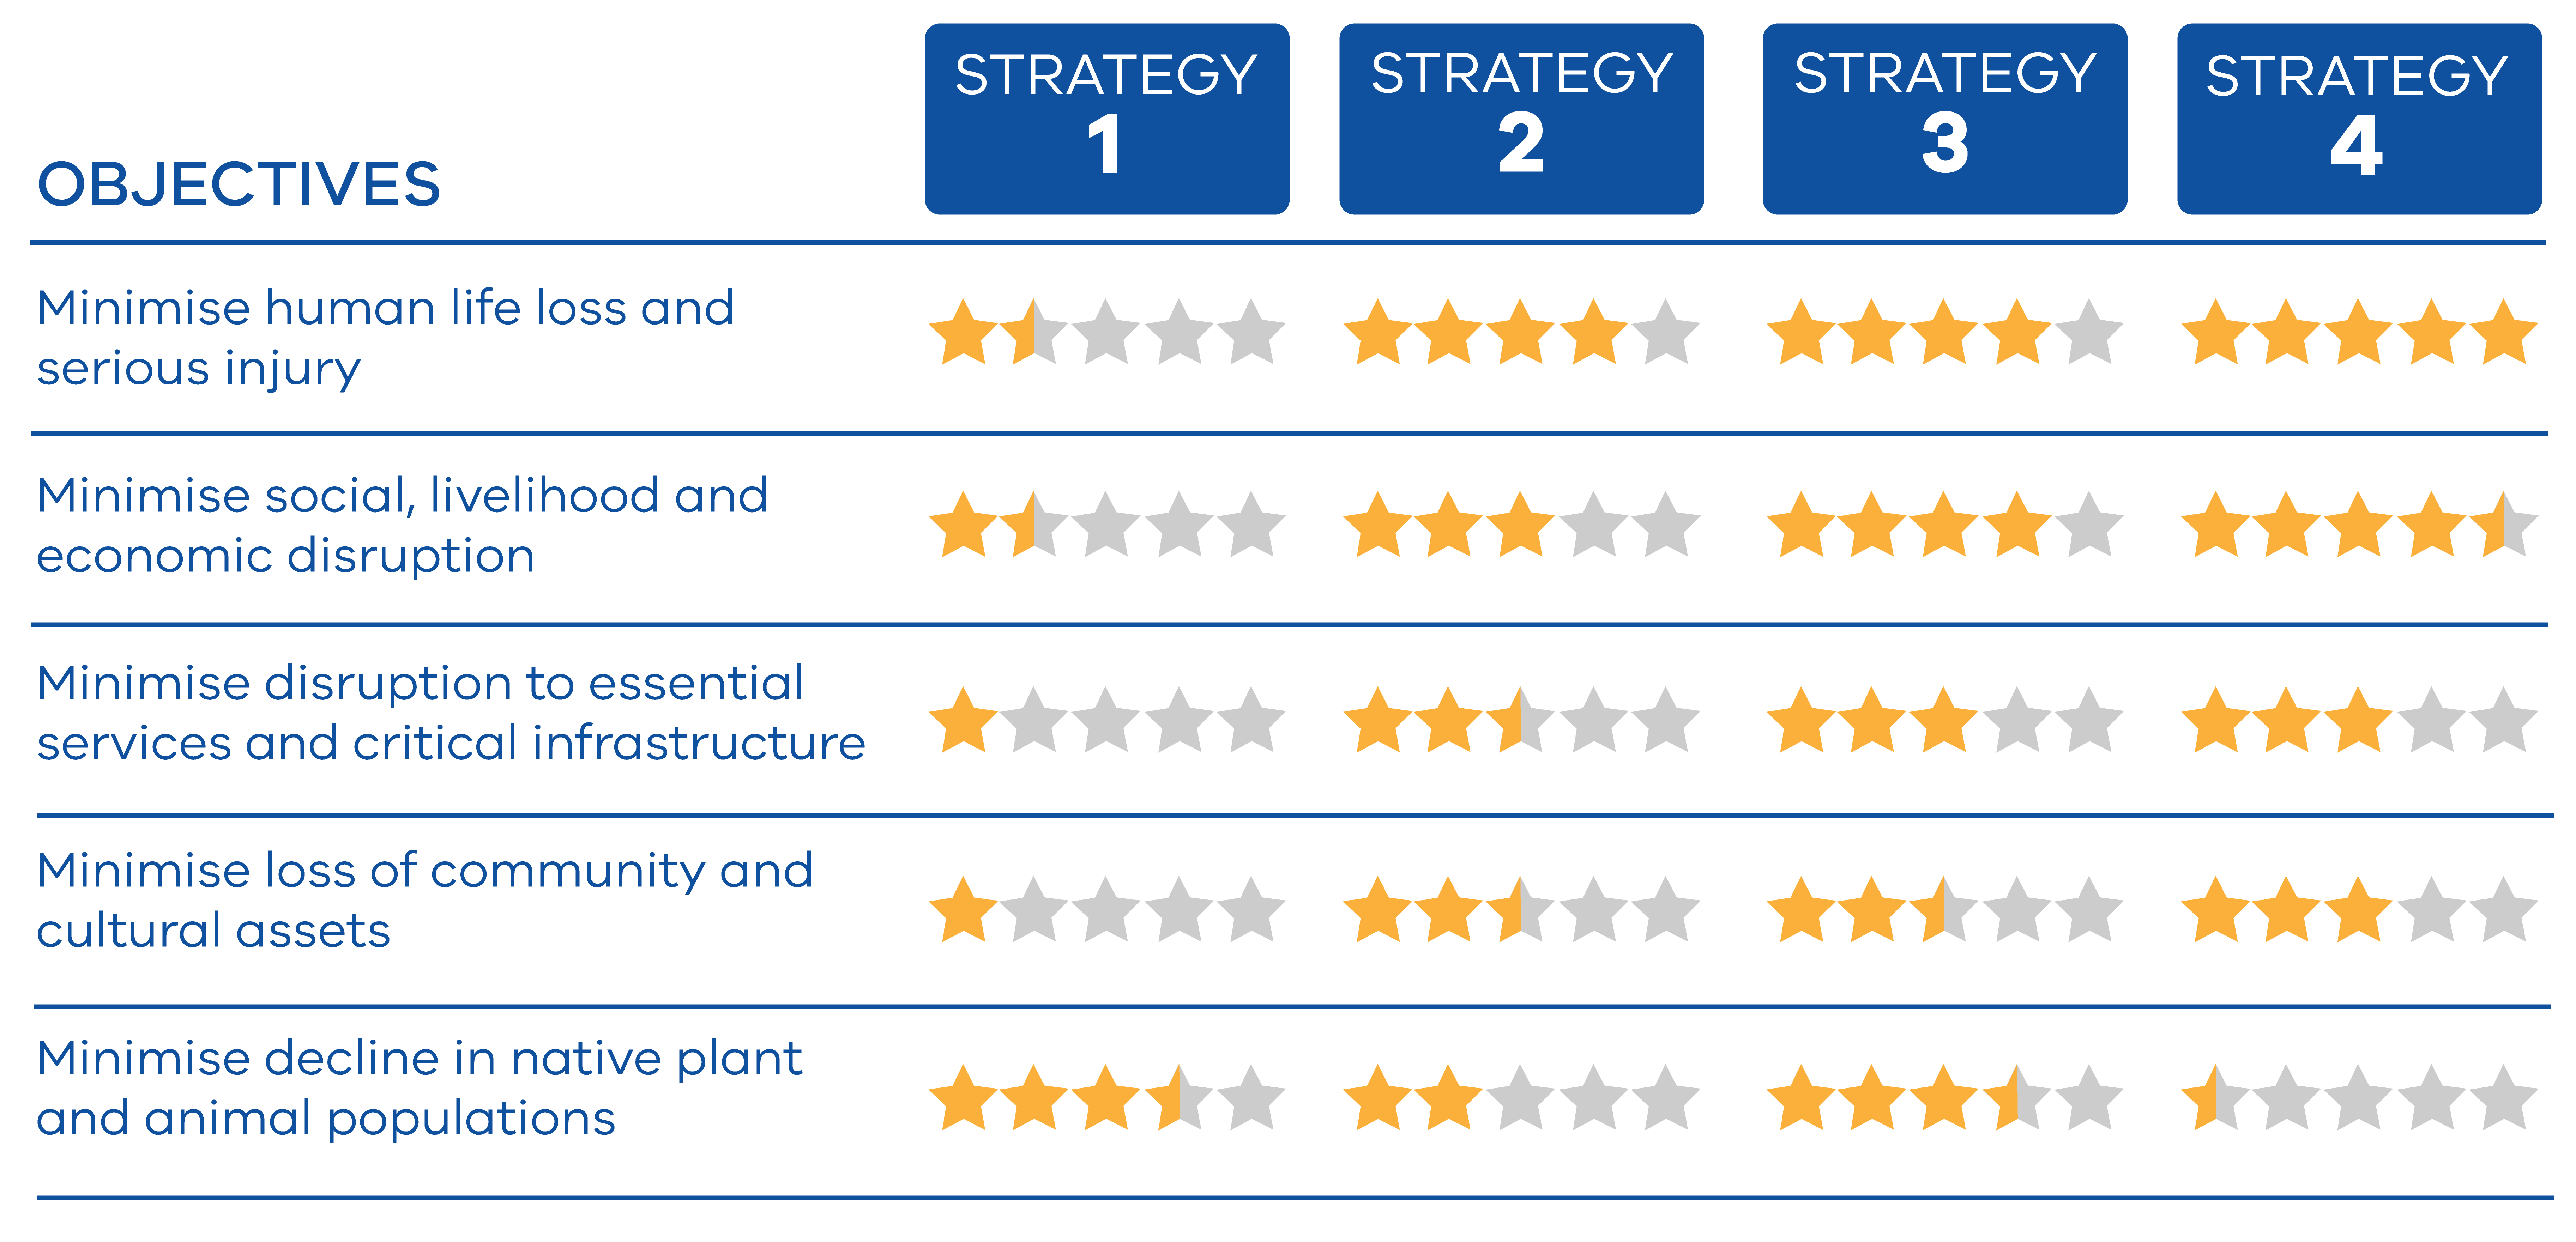 In the table below, the performance of each alternative strategy against the objectives is represented by stars. Star ratings consider both the raw data and the importance of each score, and are scaled so that there is sufficient variation in ratings to r